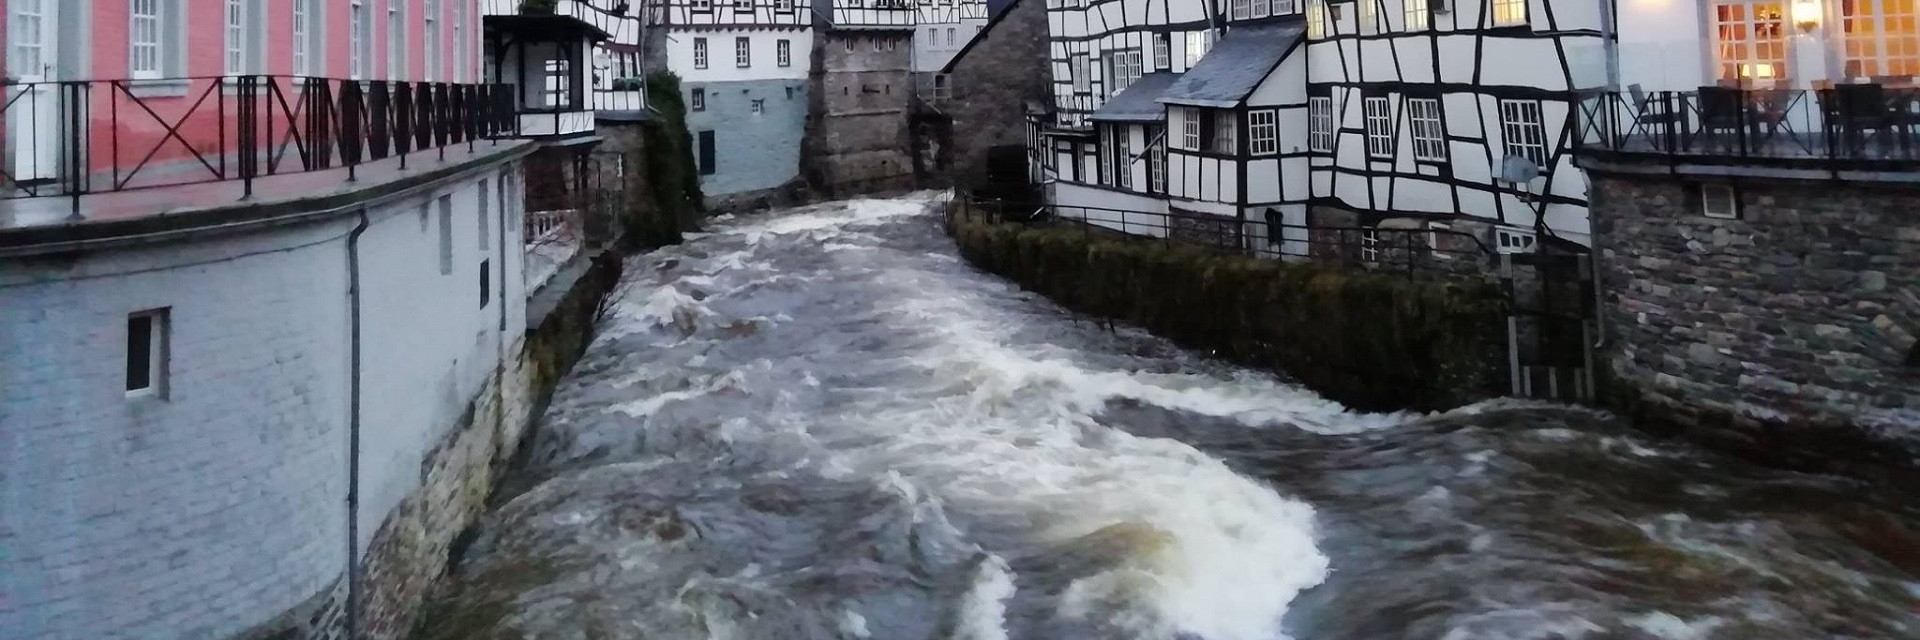 Whitewater Monschau